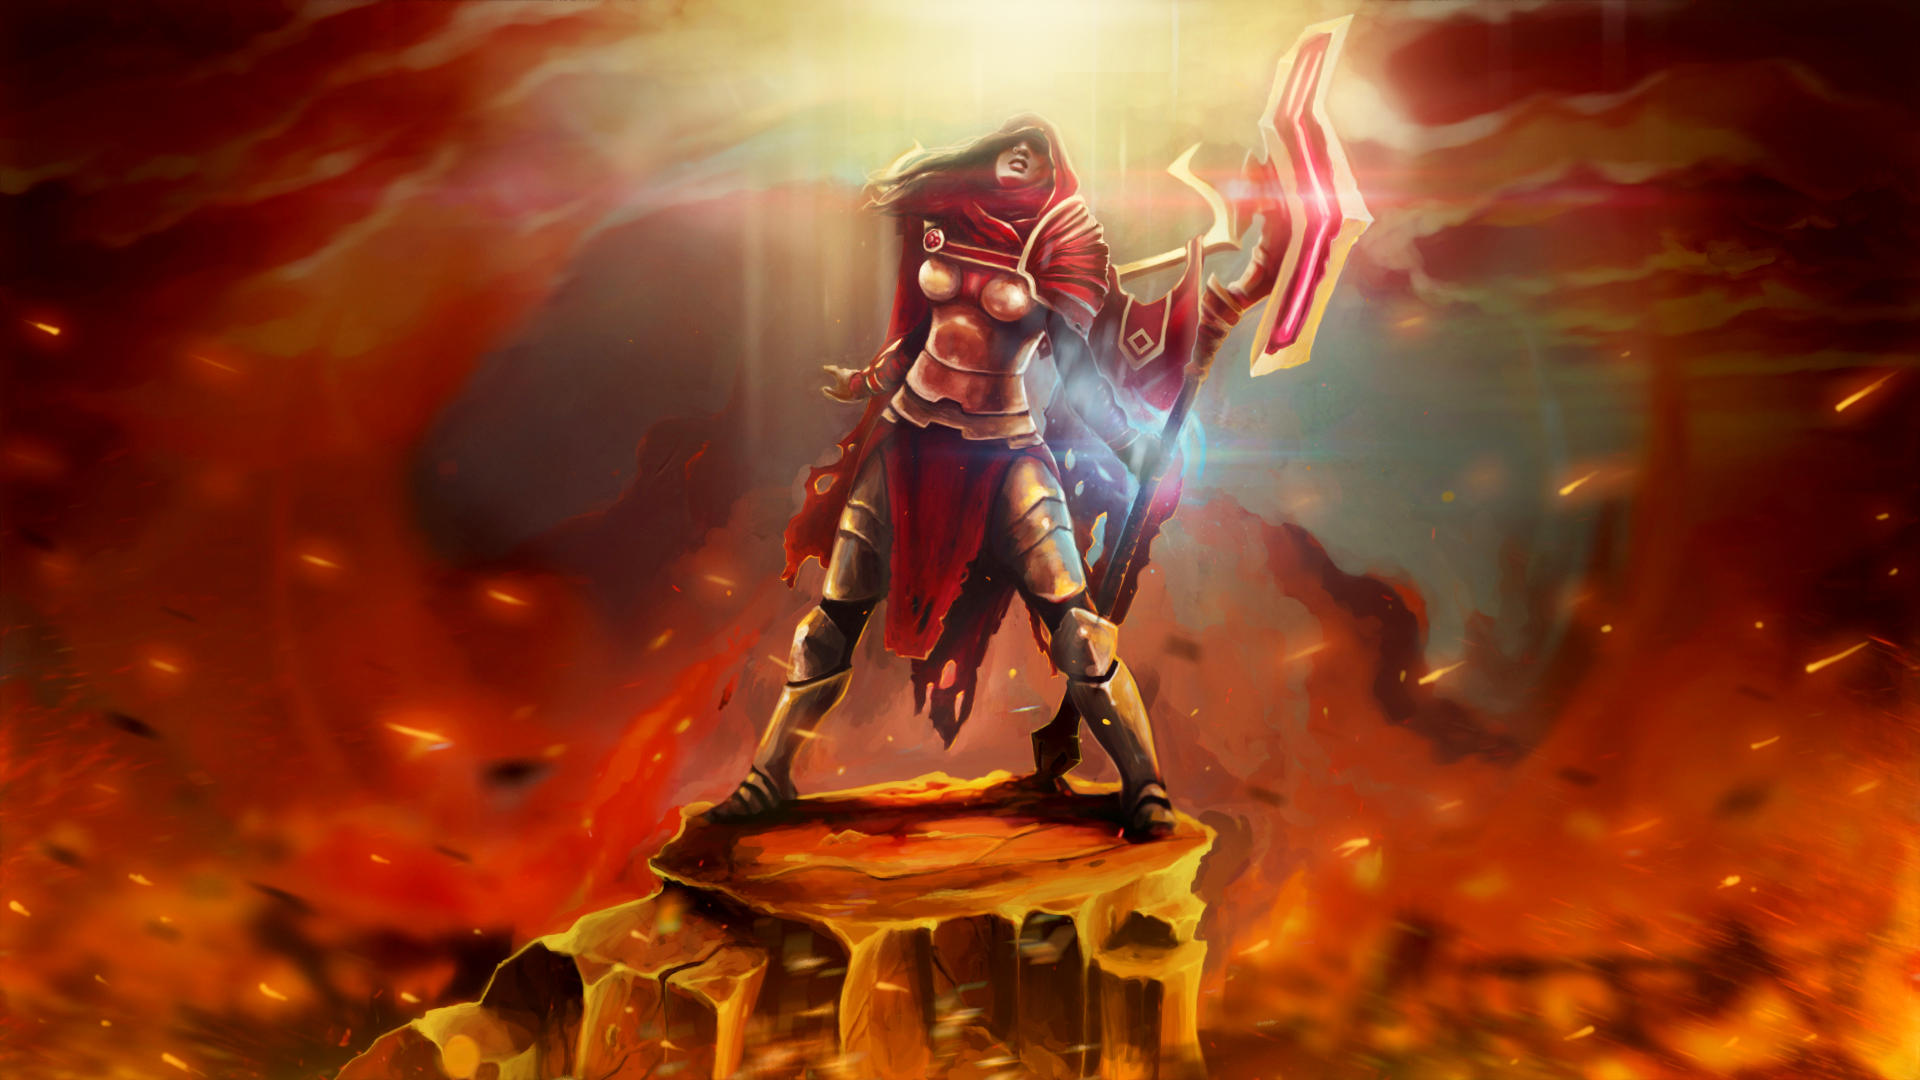 Dota 2 Legion Commander Backgrounds Is Cool Wallpapers